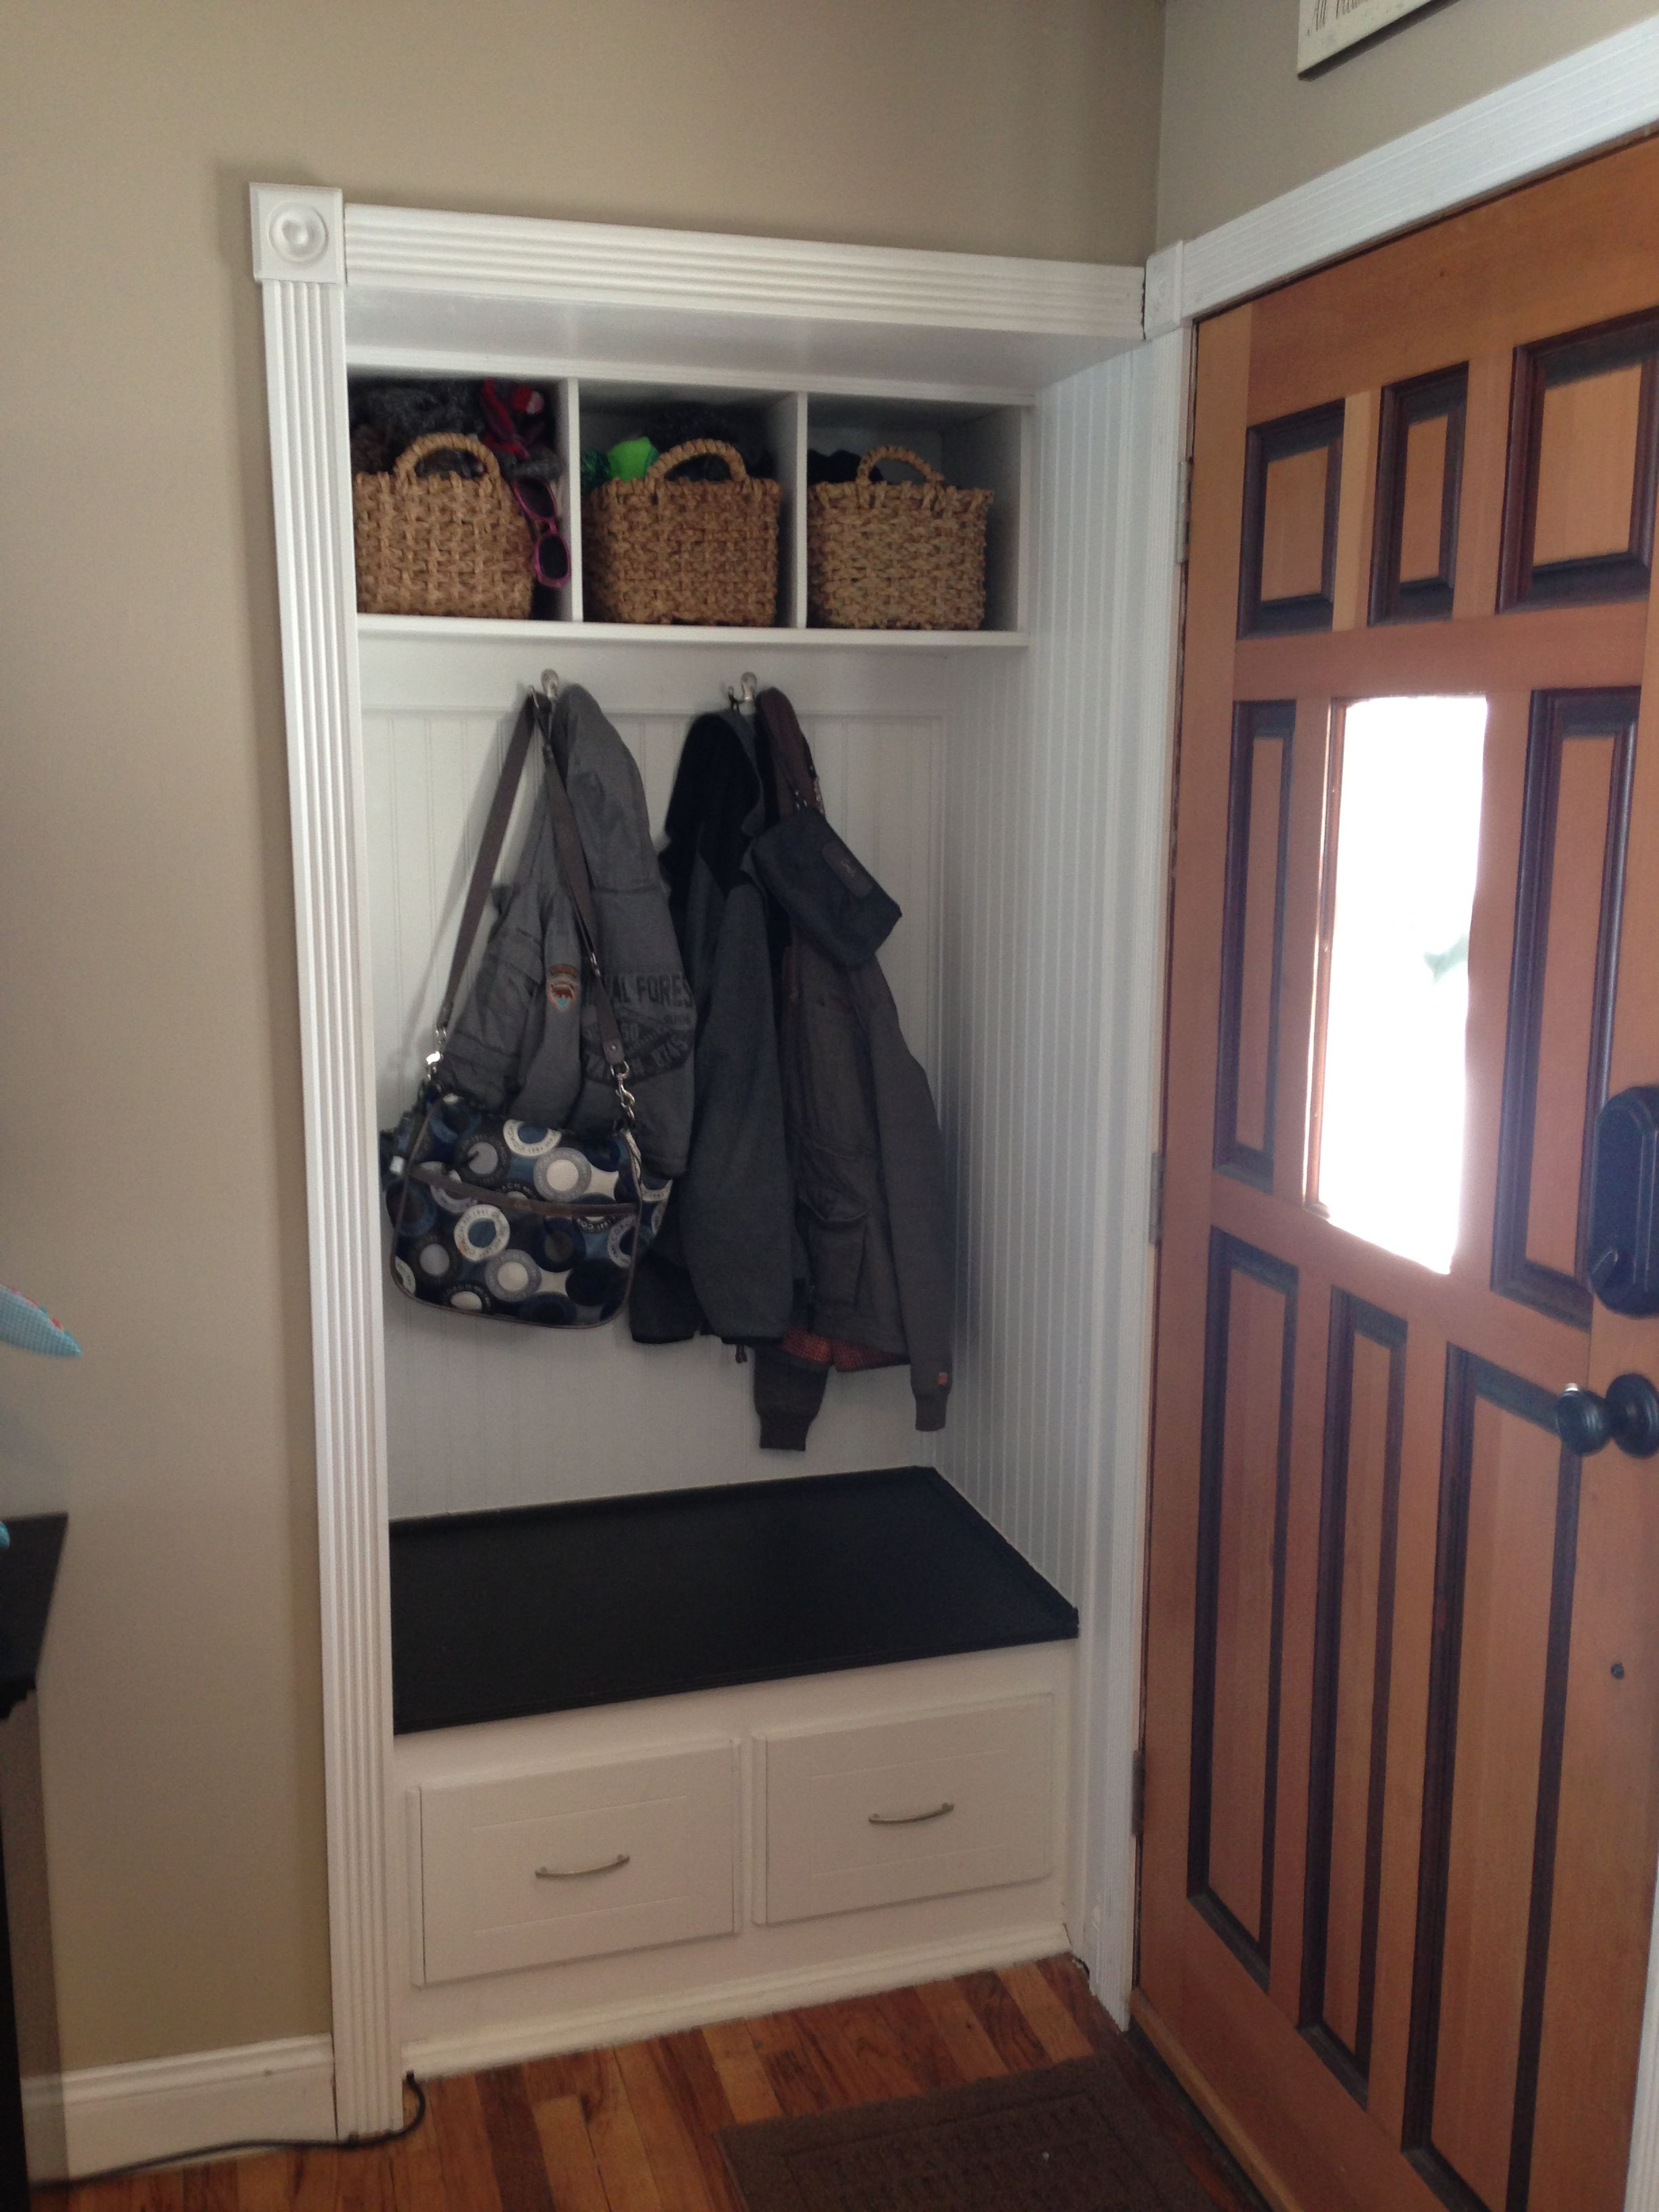 Le Meilleur Small Front Hall Closet Turned In To Mini Mud Room Ce Mois Ci